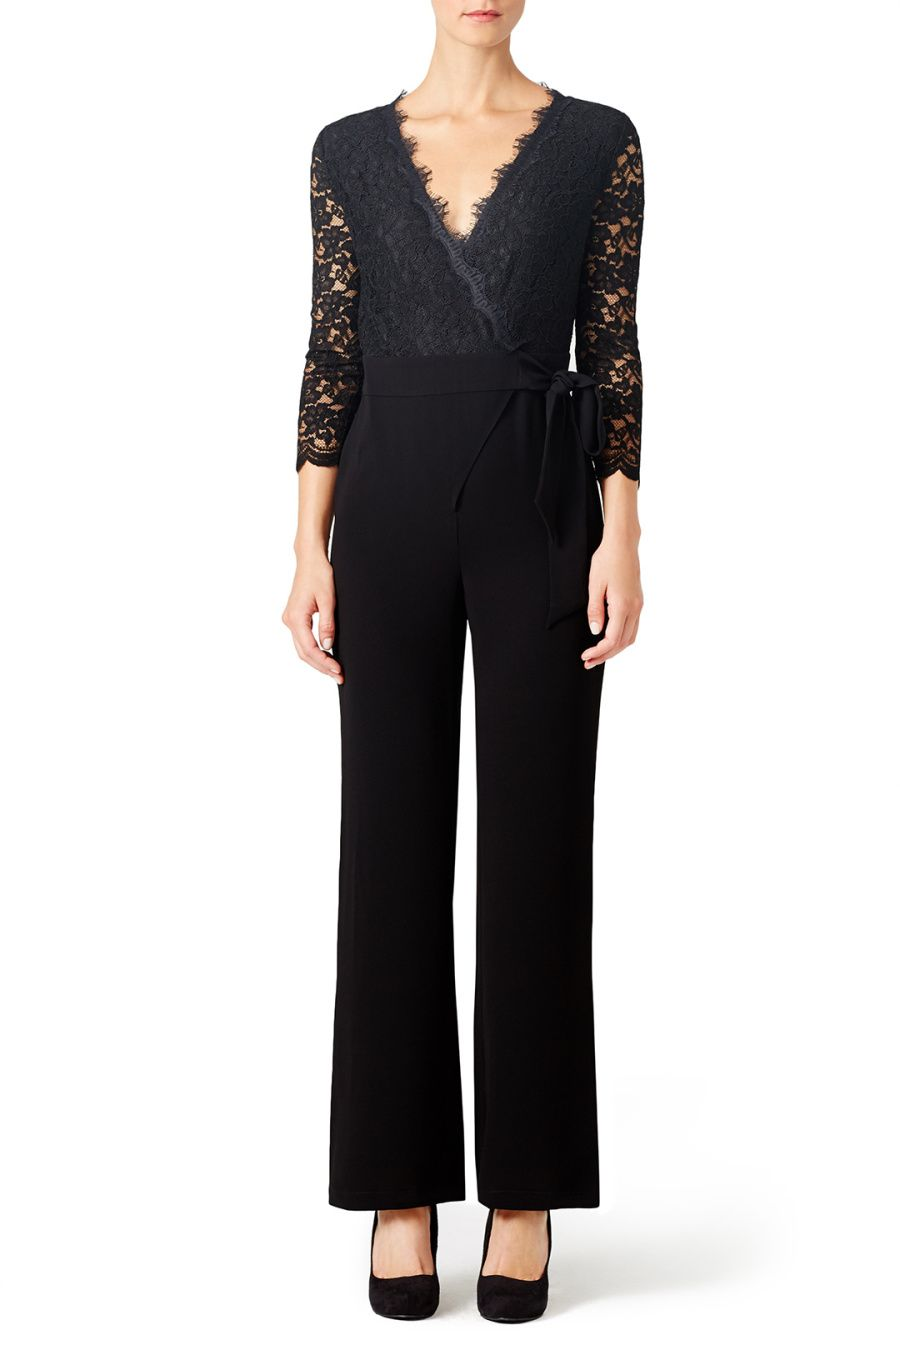 dbe58a8788df Jumpsuits You Could Totally Get Away With Wearing to A Wedding. Diane von  Furstenberg Christie Jumpsuit: http://www.stylemepretty.com/